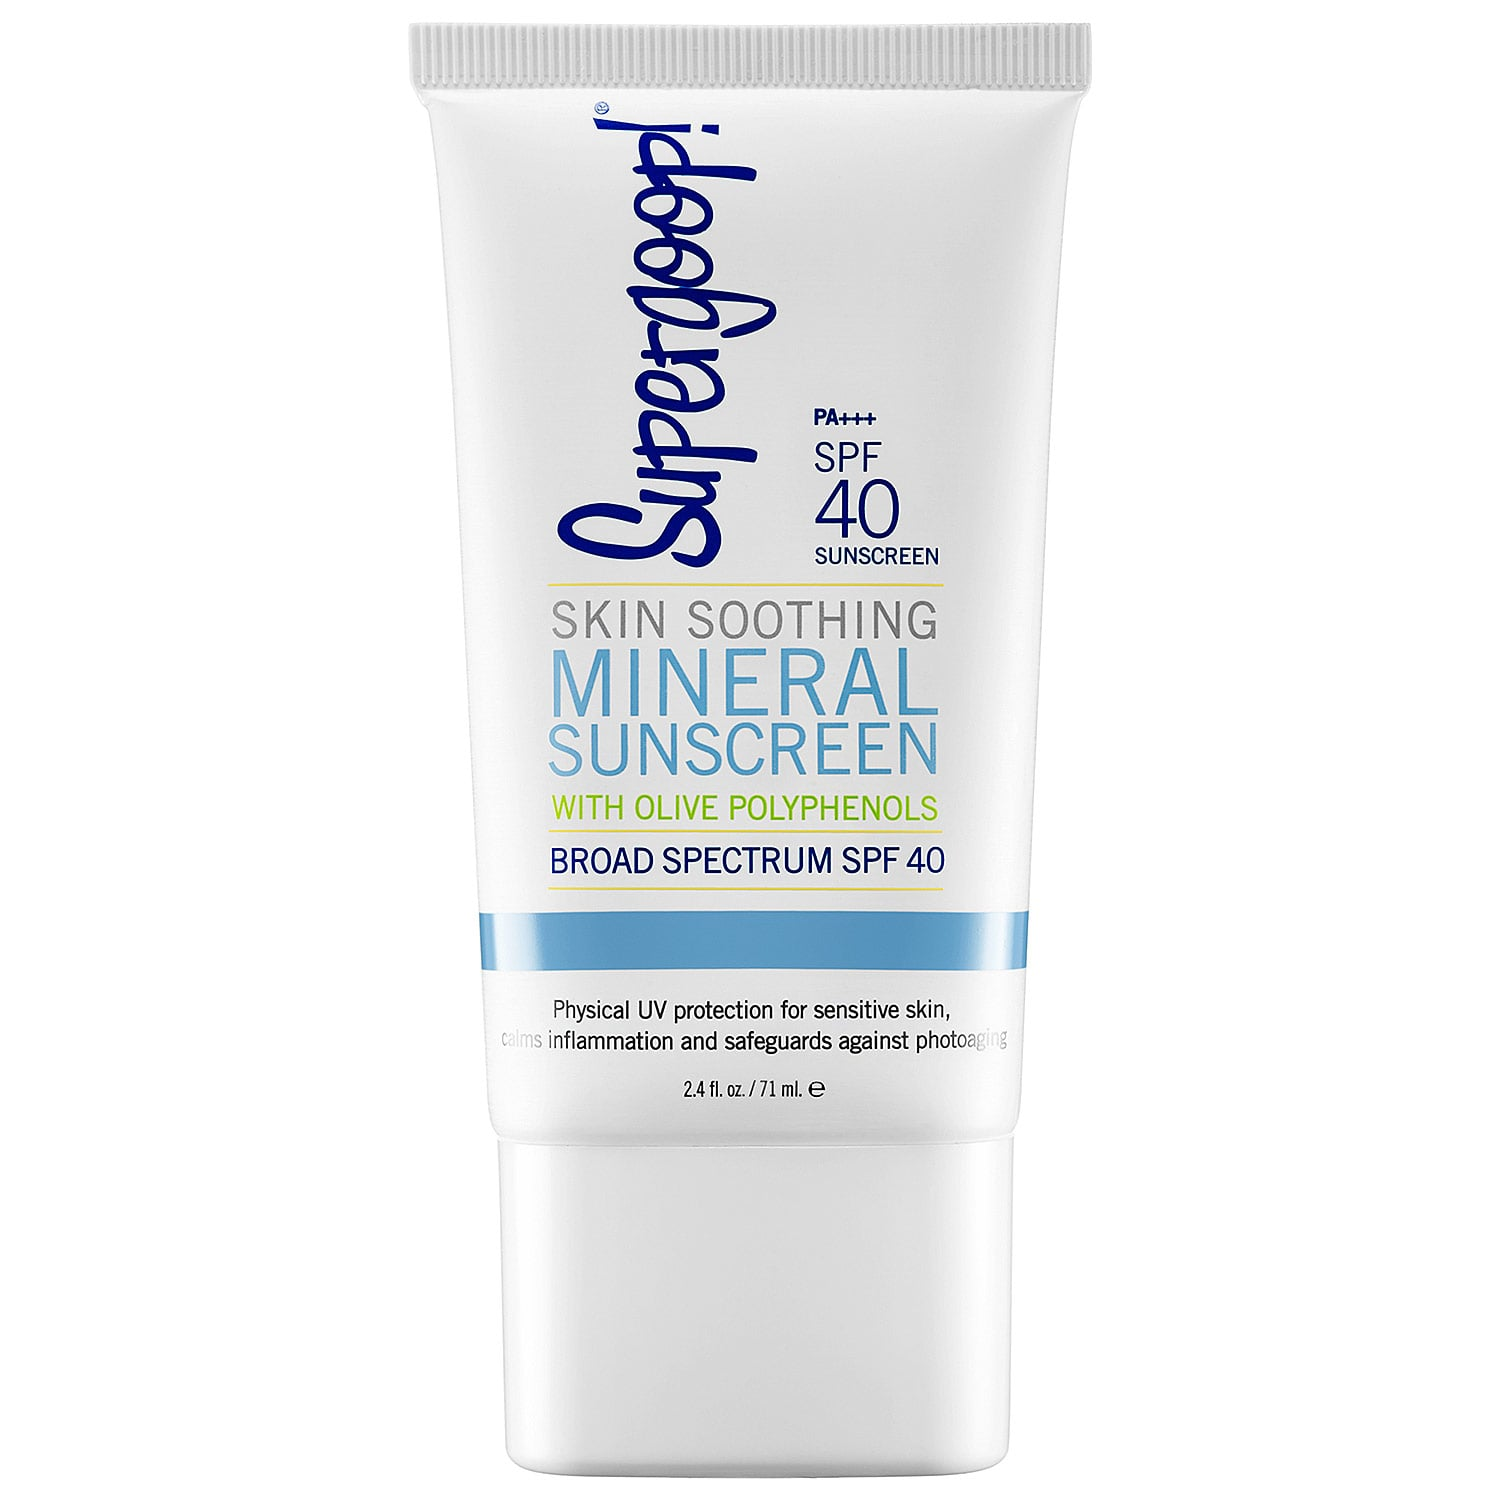 Supergoop! Skin Soothing Mineral Sunscreen Broad Spectrum SPF 40